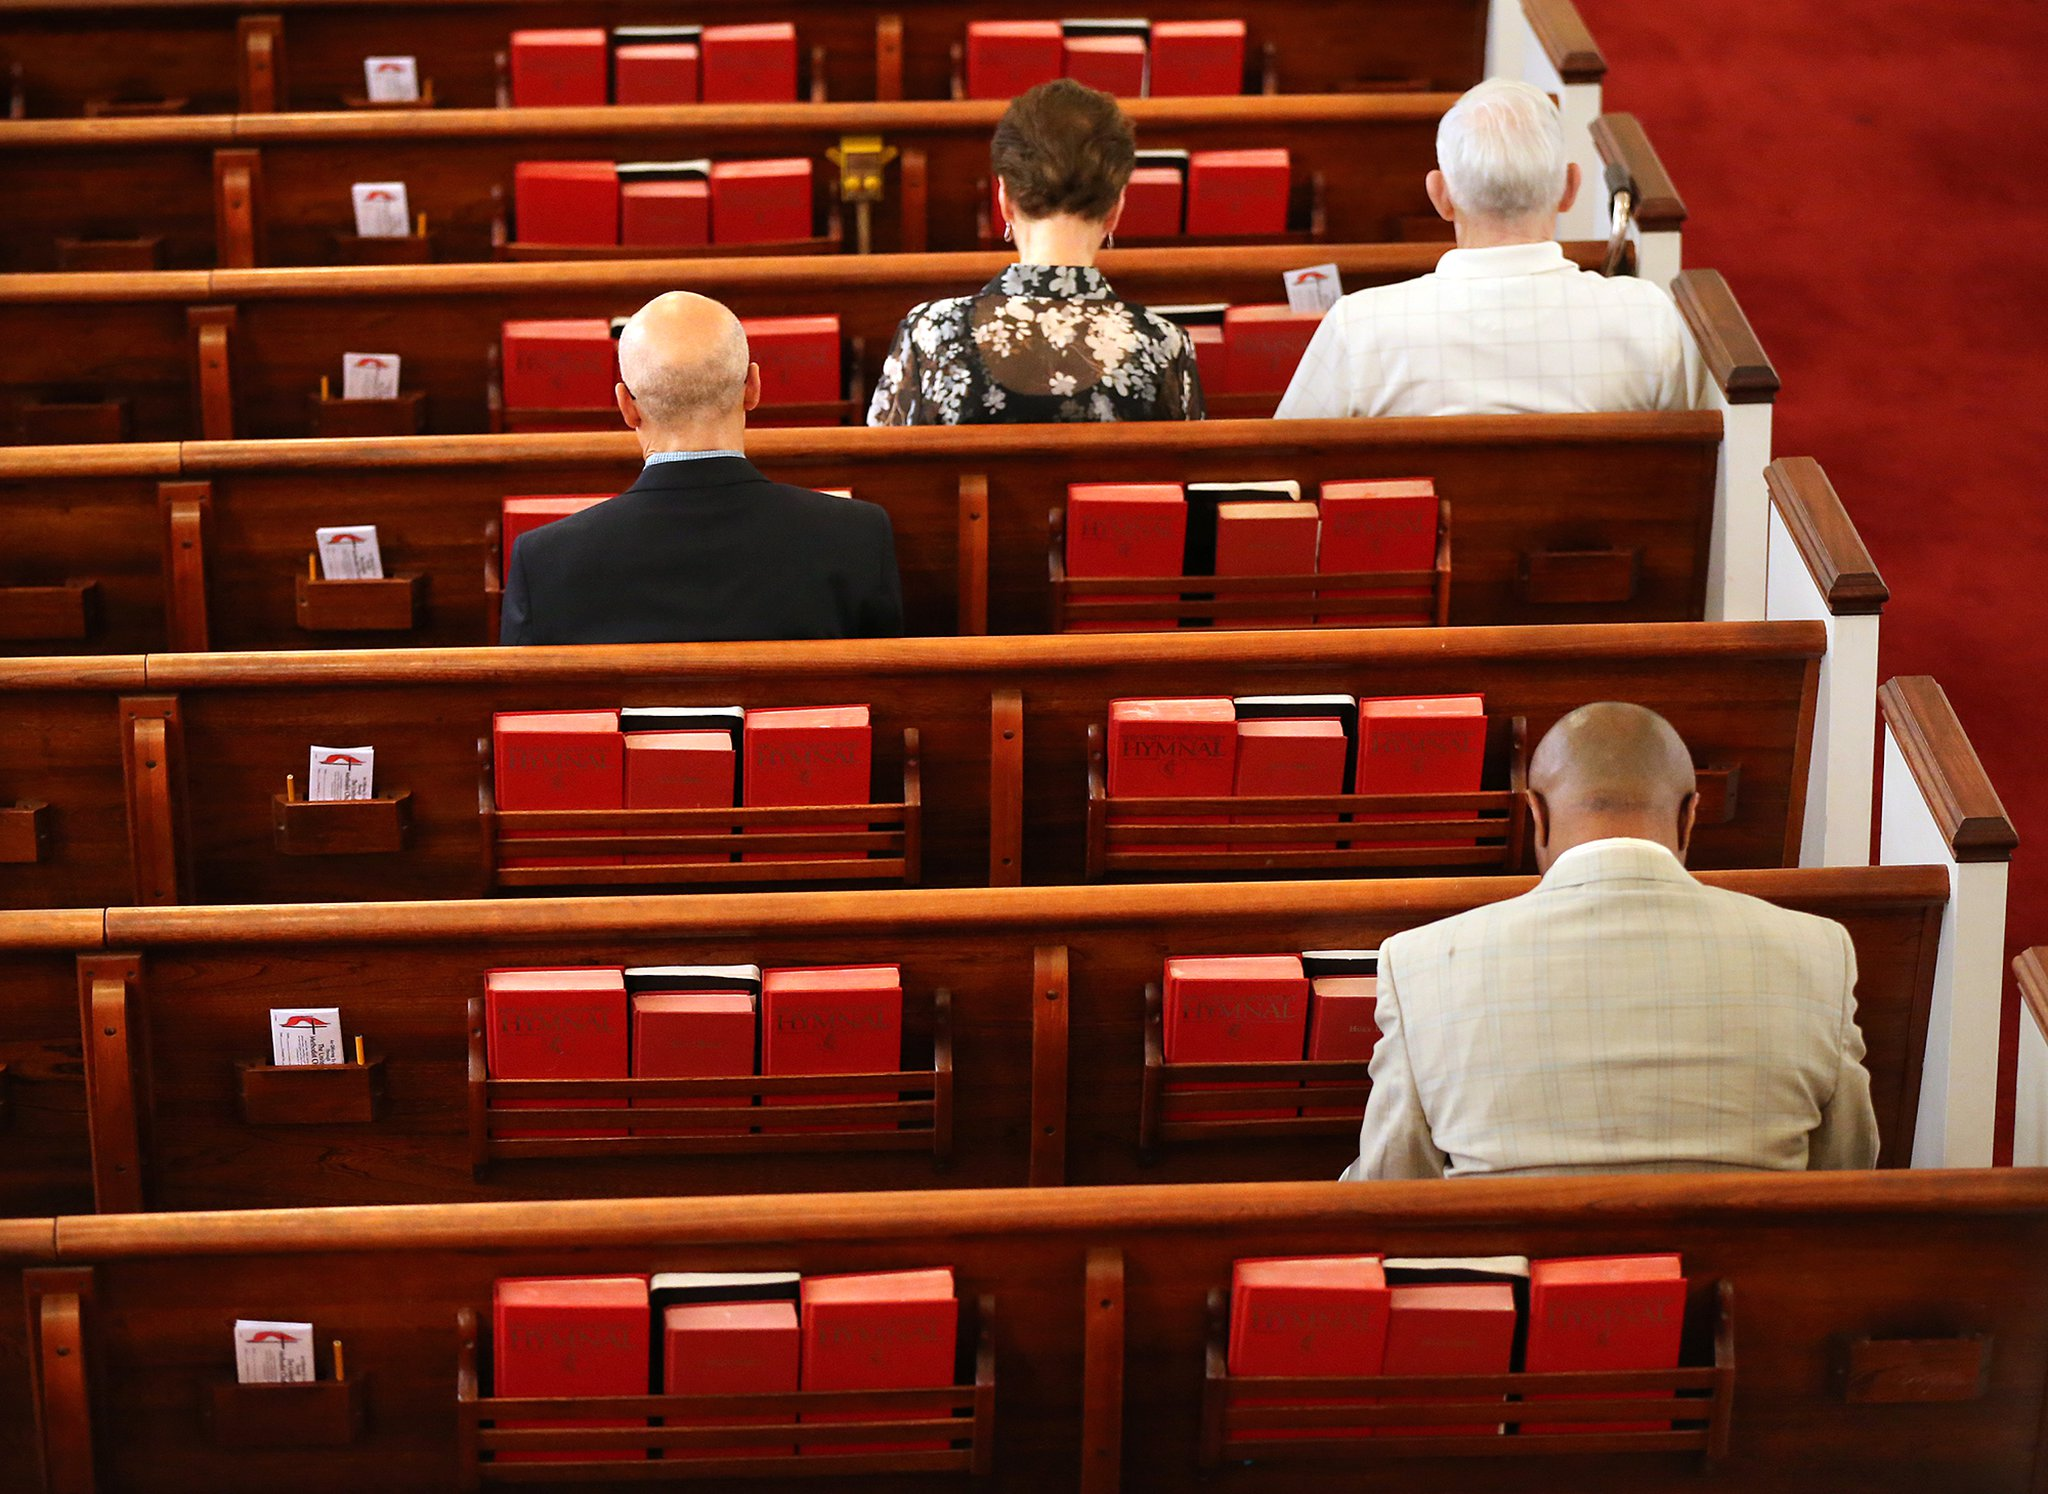 This Life: Children who attend religious services are happier adults